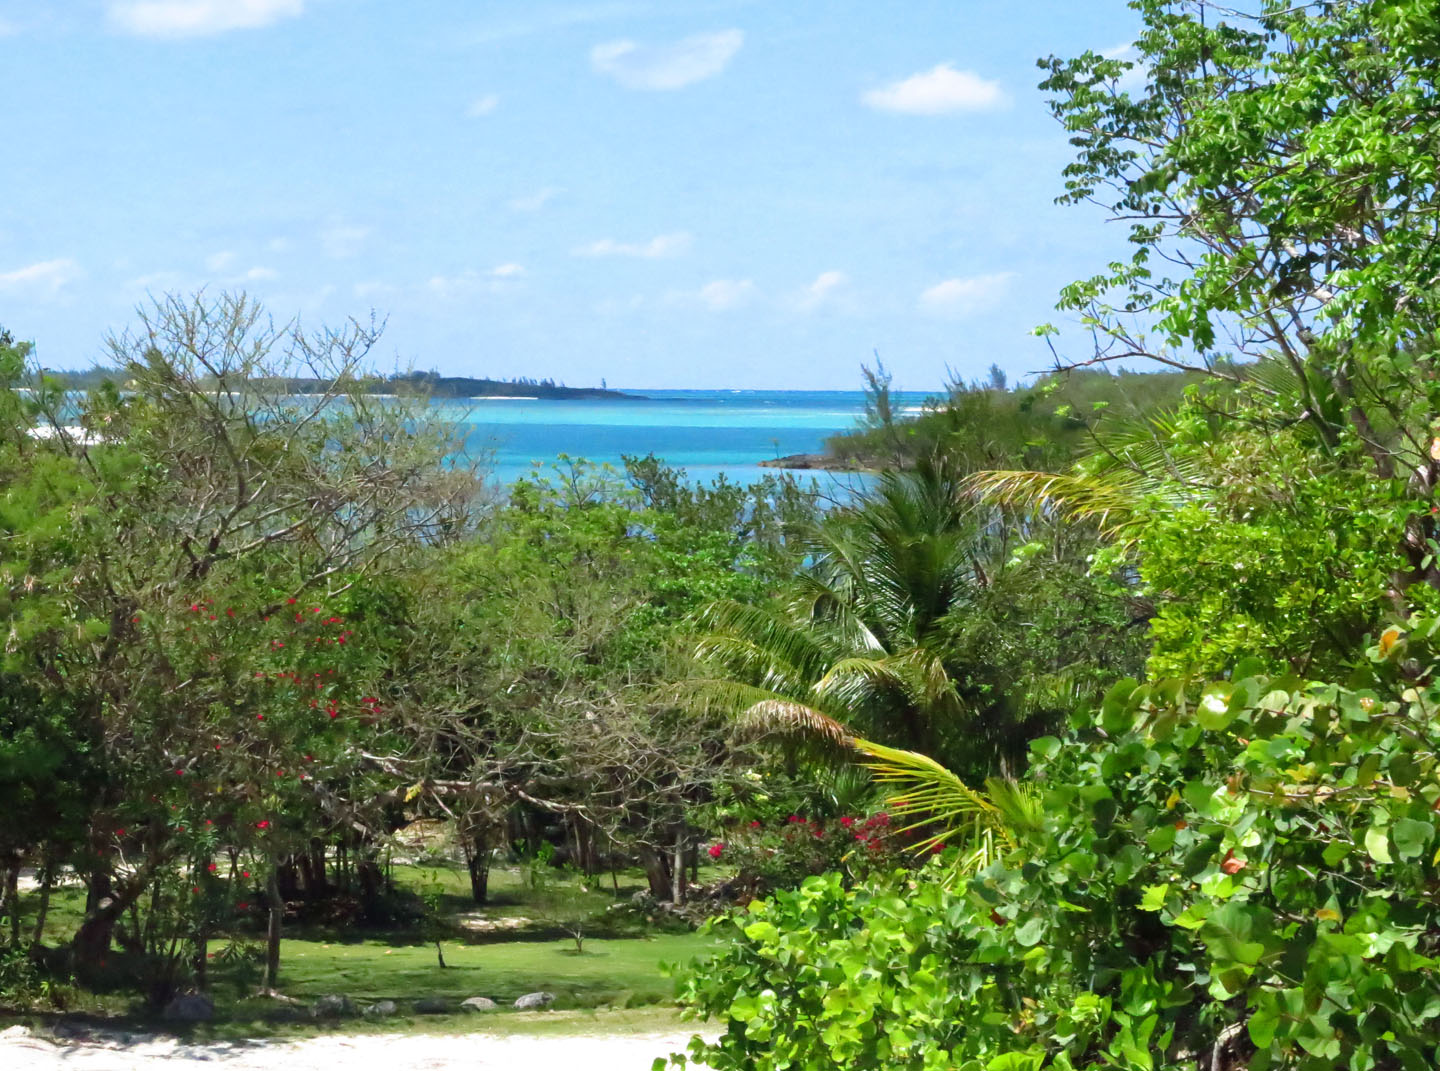 North End, Green Turtle Cay